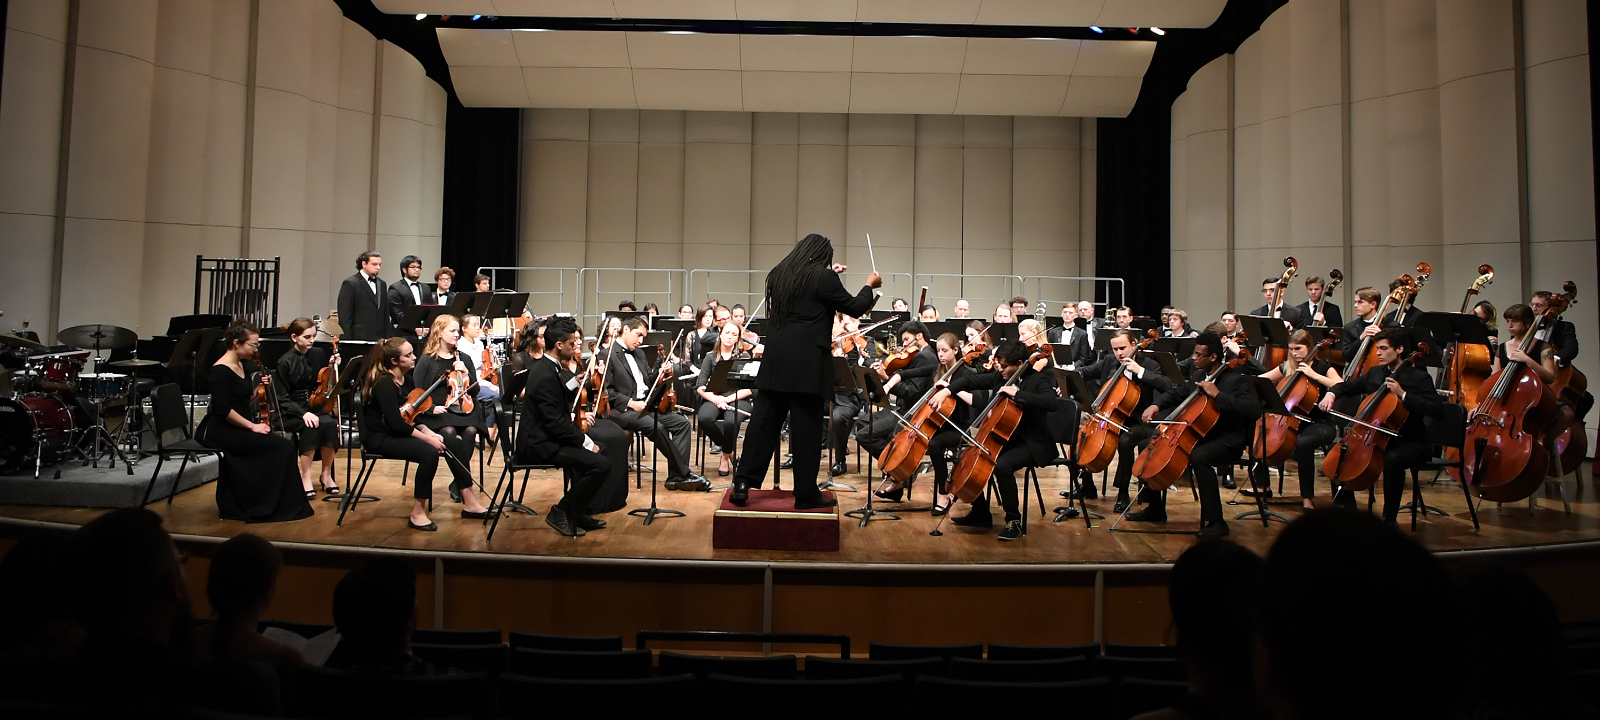 Learn more about our award-winning orchestras